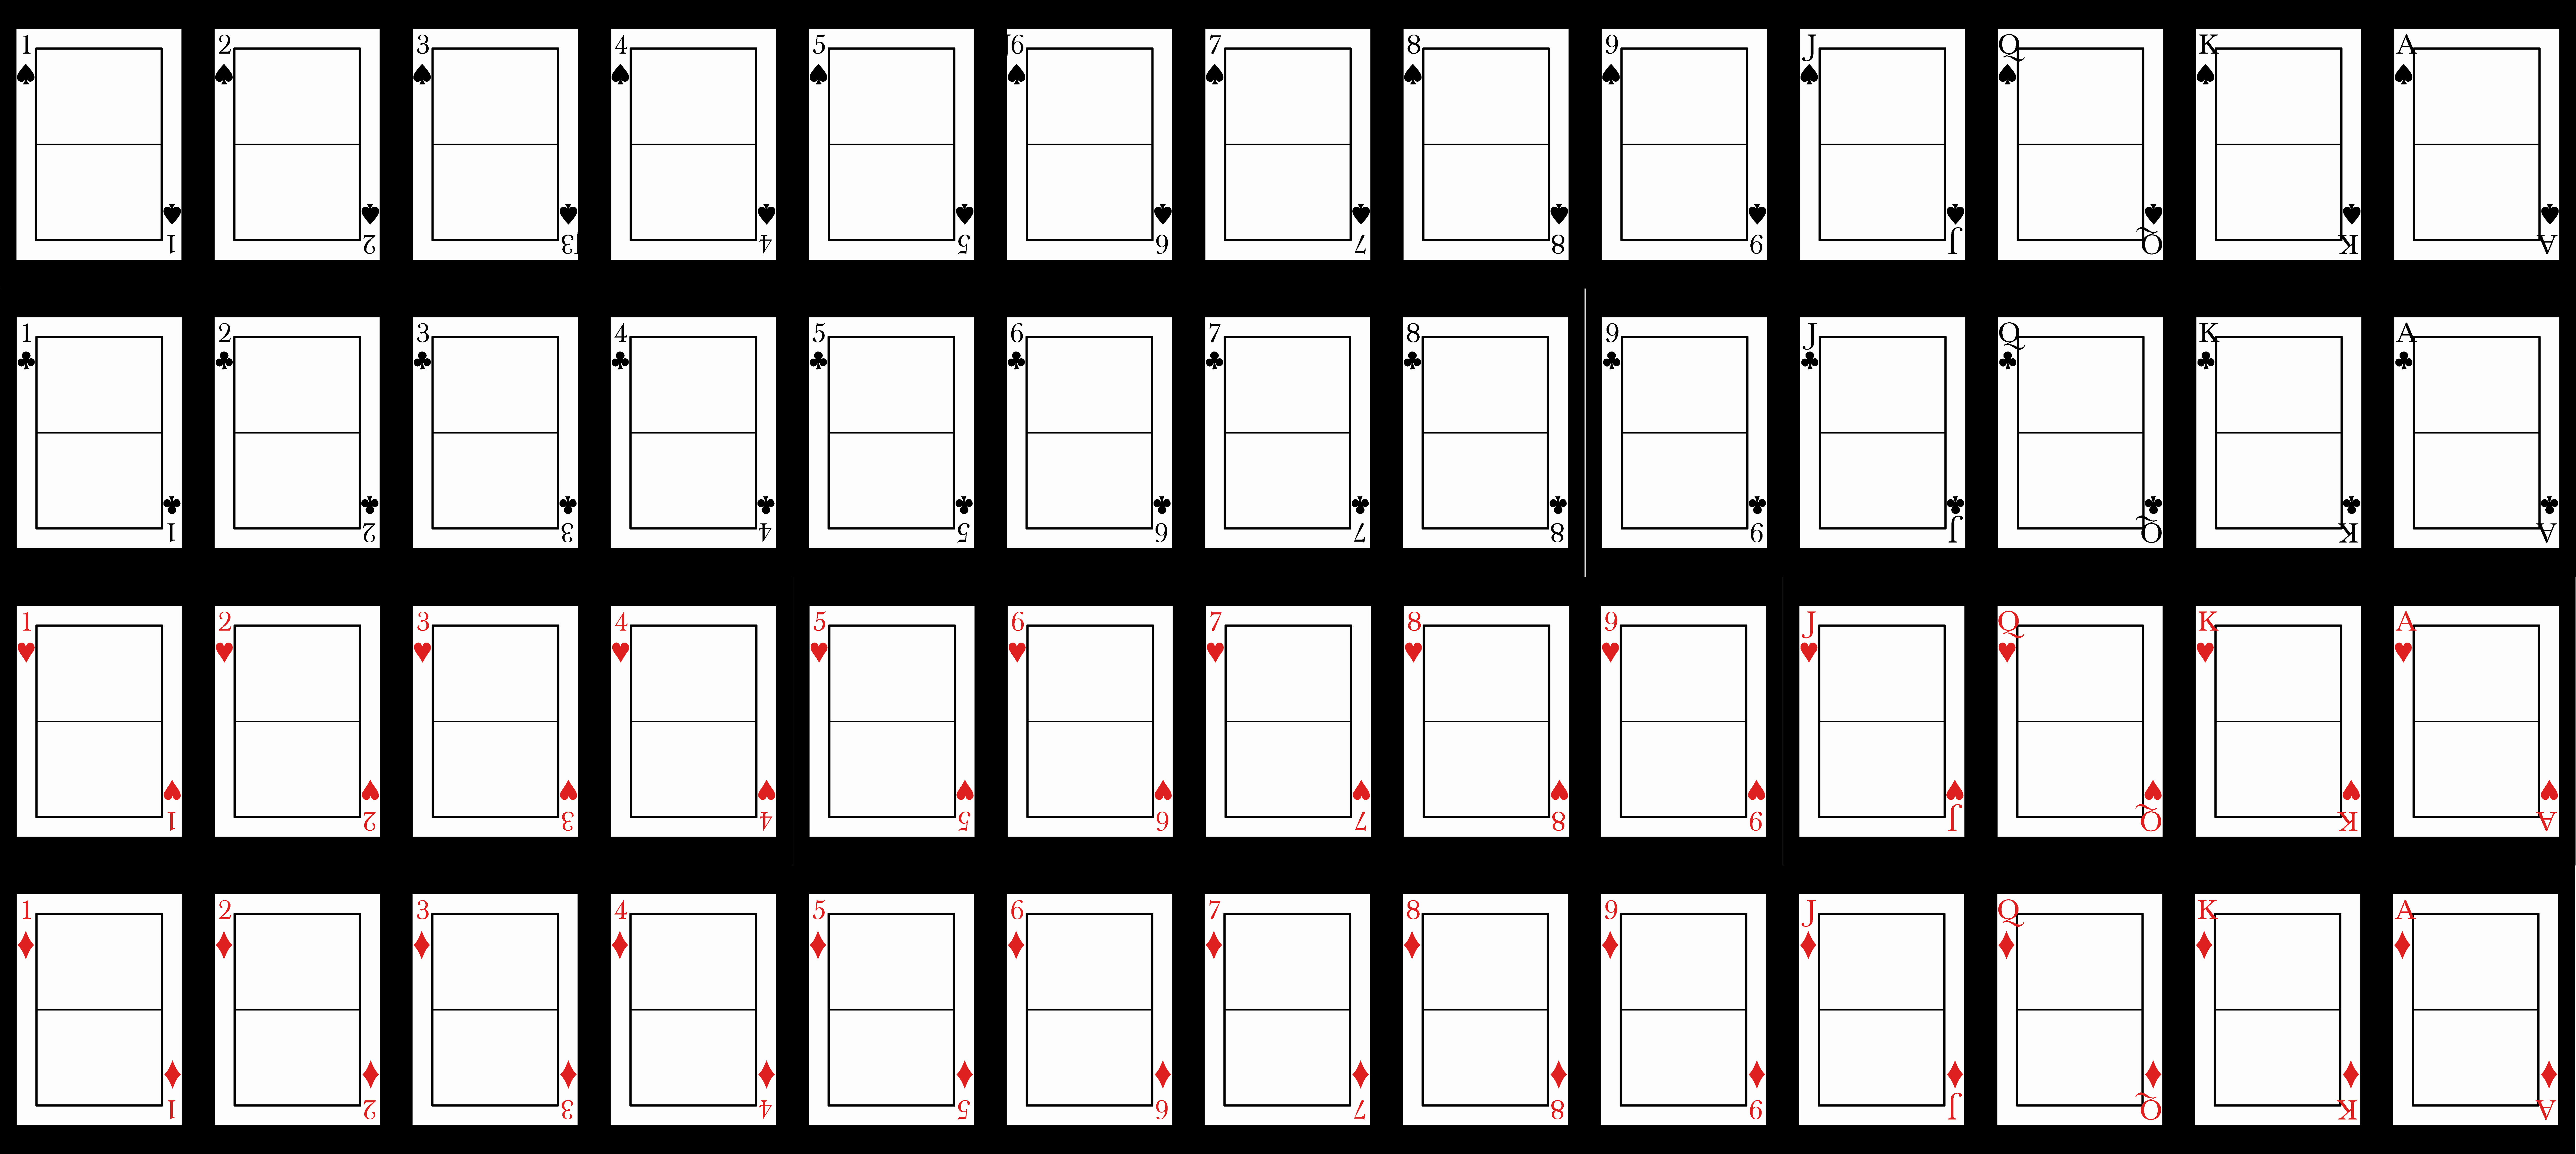 Blank Playing Card Template Awesome Playing Cards Template – Emmamcintyrephotography